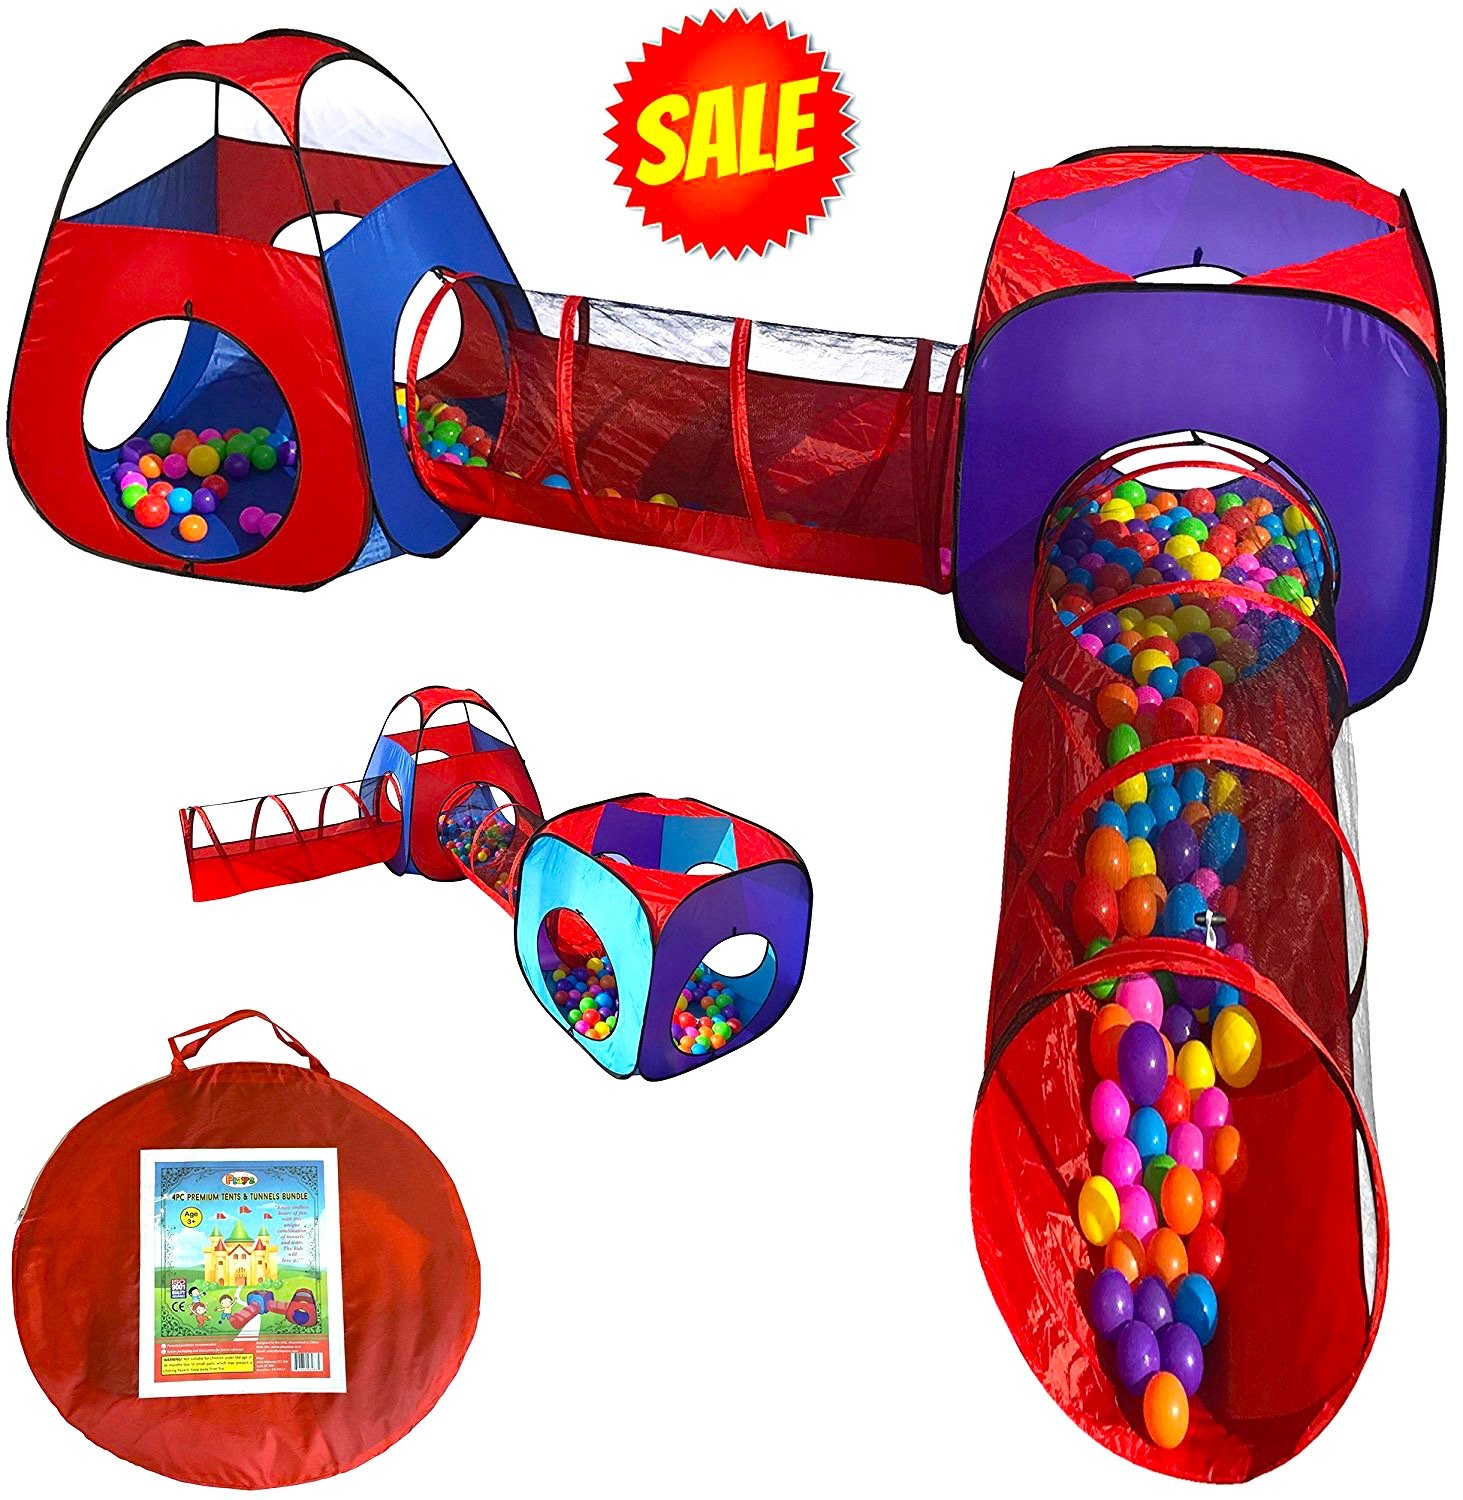 7 Best Crawling Tunnels for Toddlers Reviews of 2021 14